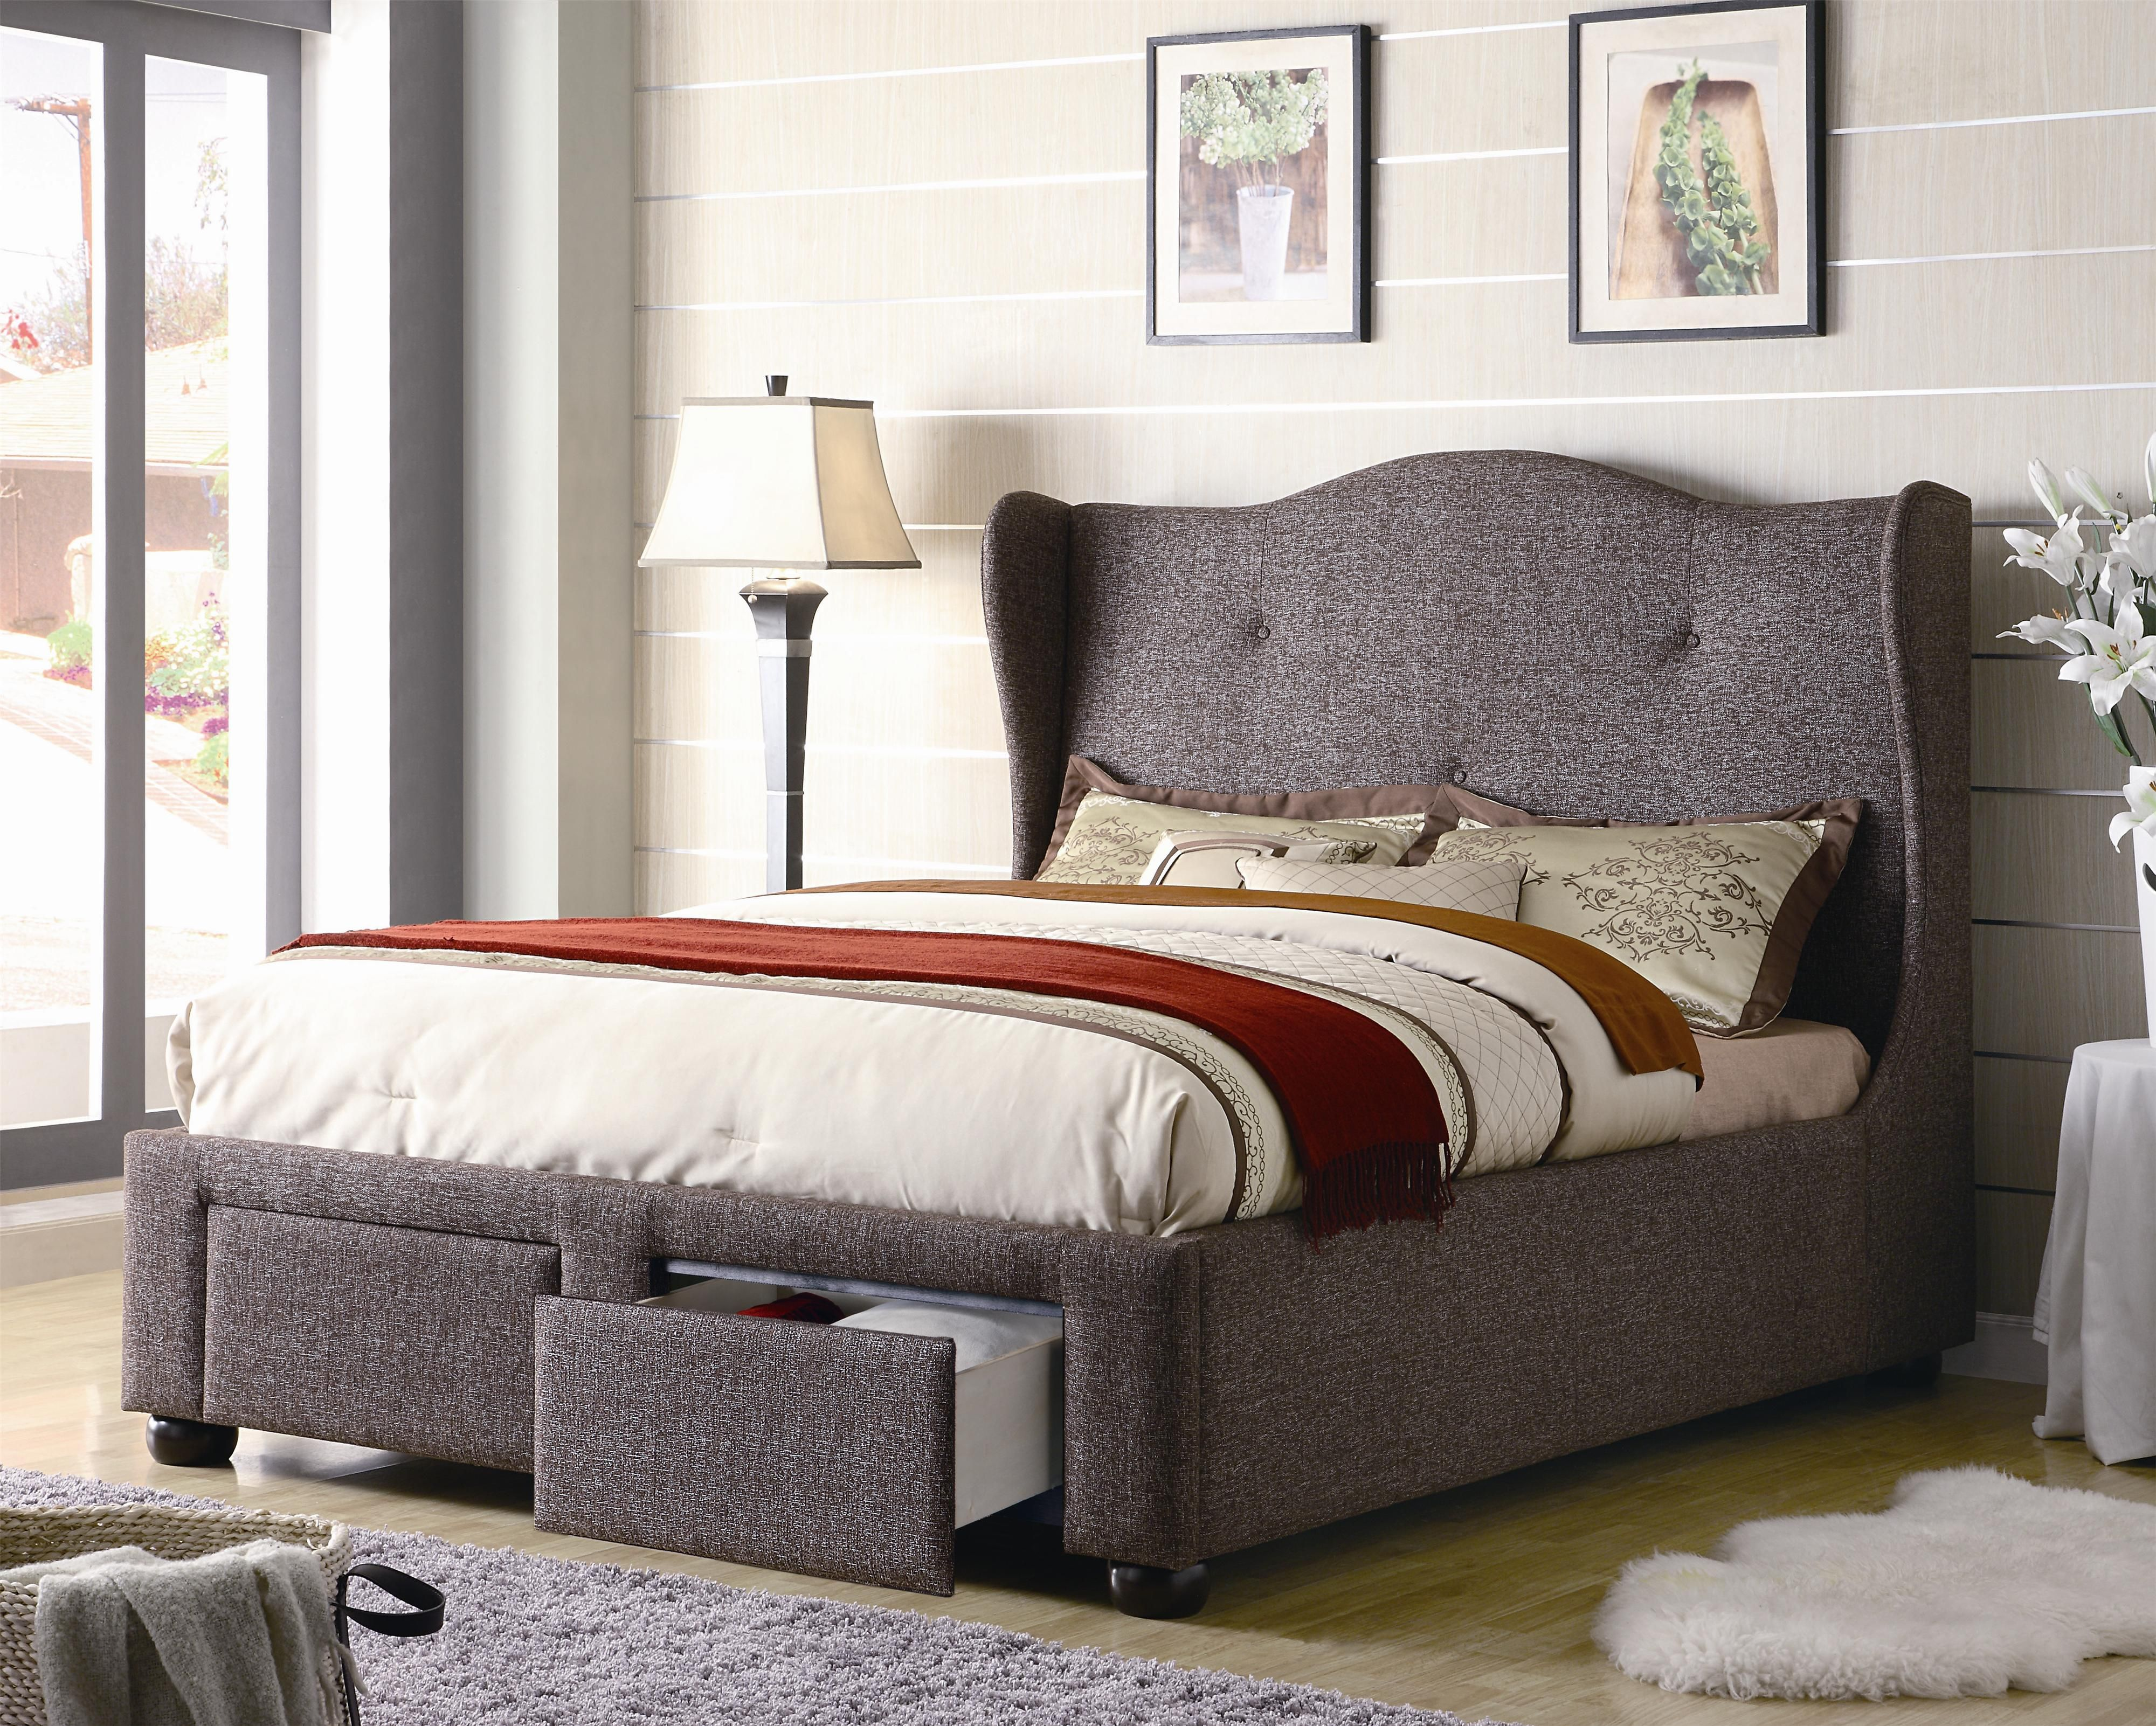 Upholstered Cleo Queen Brown Tweed Wing Bed With Storage Drawers